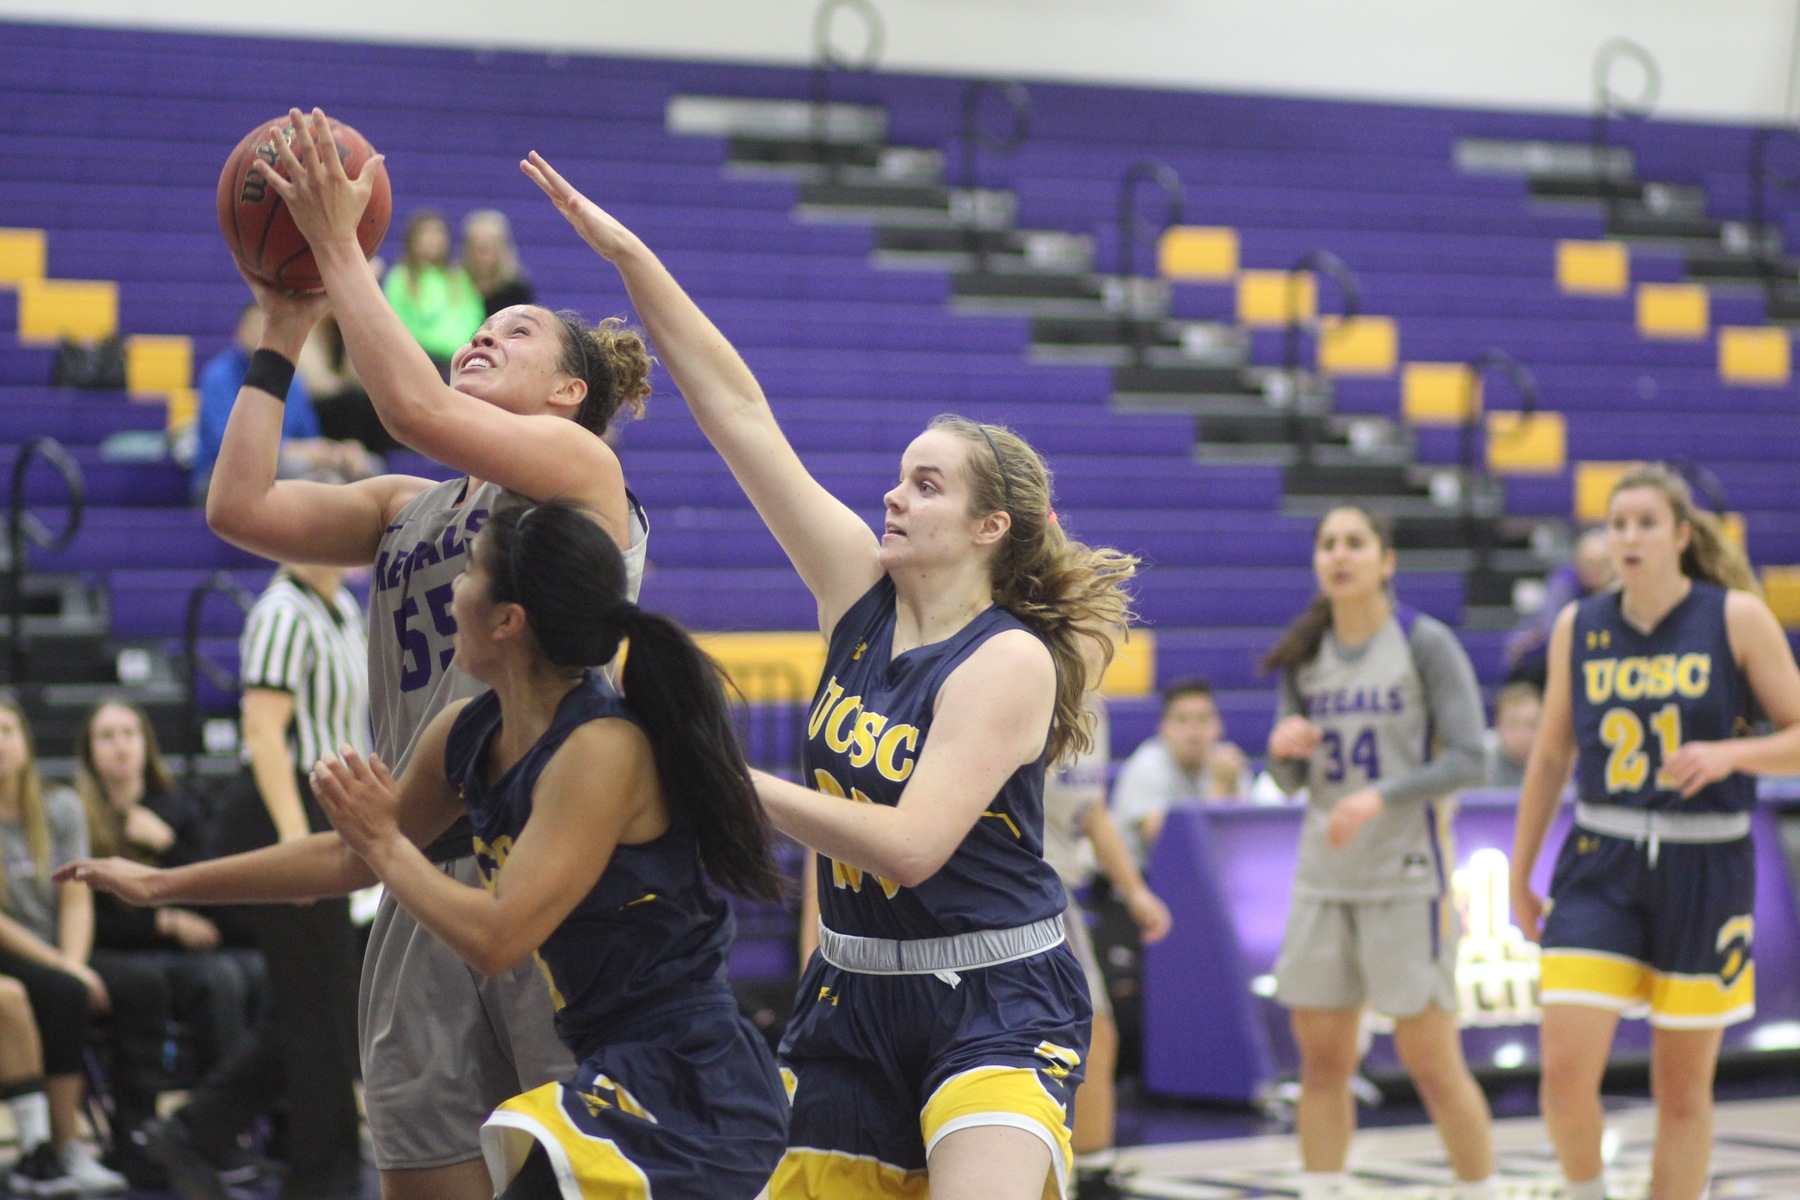 Regals Complete Comeback Against Banana Slugs